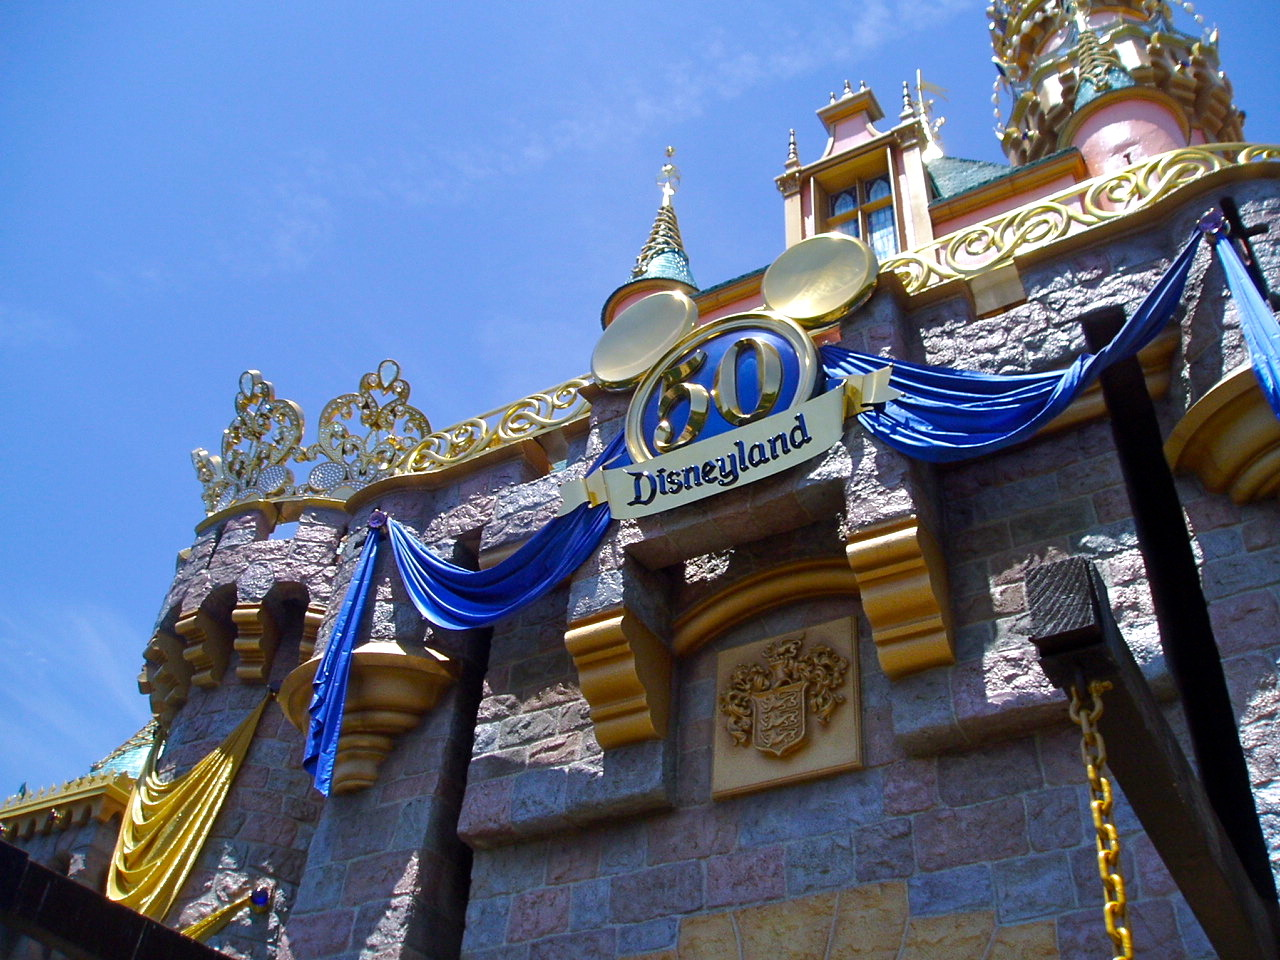 36 Days to Go —> Fifth Disney trip (third to Disneyland). Mandy and I just happened to take our first-ever-just-us-bffs-grown-up trip when Disneyland's 50th Anniversary celebrations were beginning. 2005.